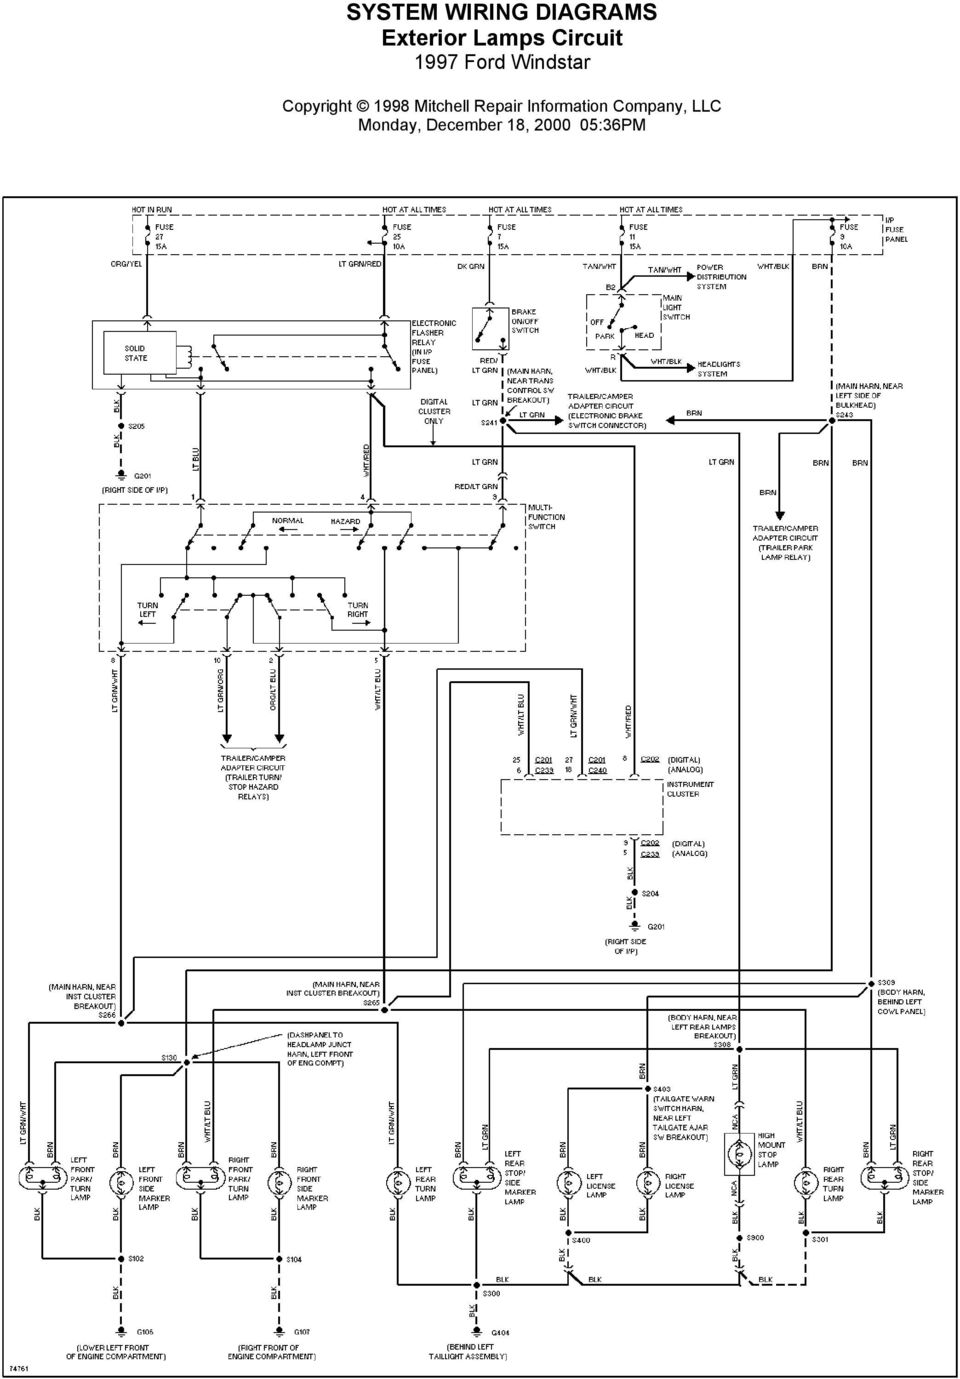 System Wiring Diagrams Air Conditioning Circuits 1997 Ford Windstar Expedition Electrical Circuit And Diagram 20 Trailer Camper Adapter Monday December 18 36pm